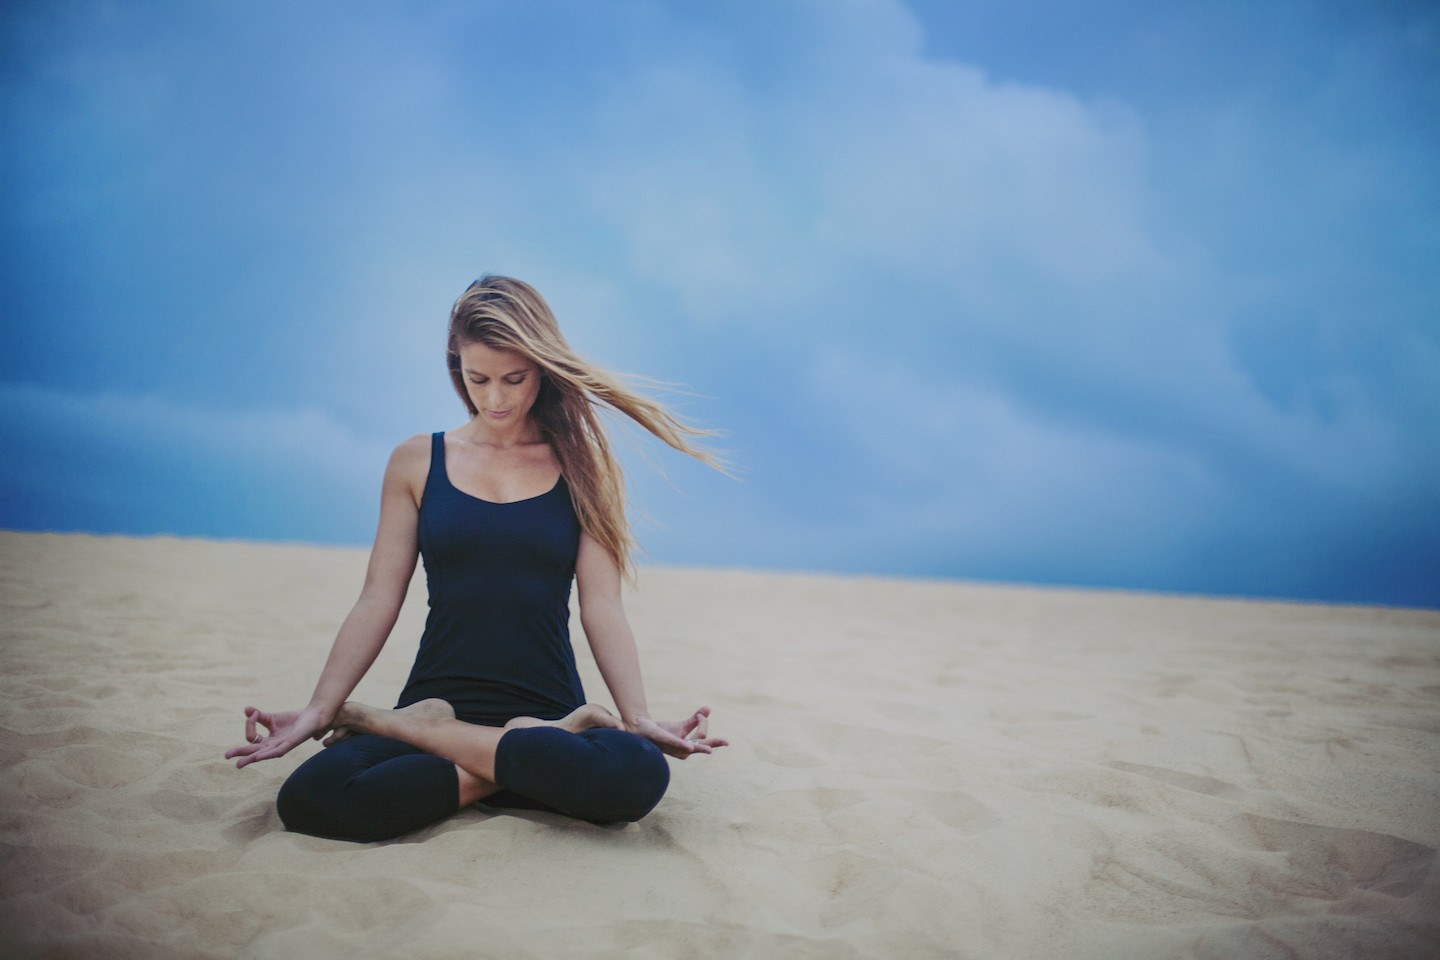 duck village yoga studio instructor doing sitting meditation yoga pose in sand on the outer banks